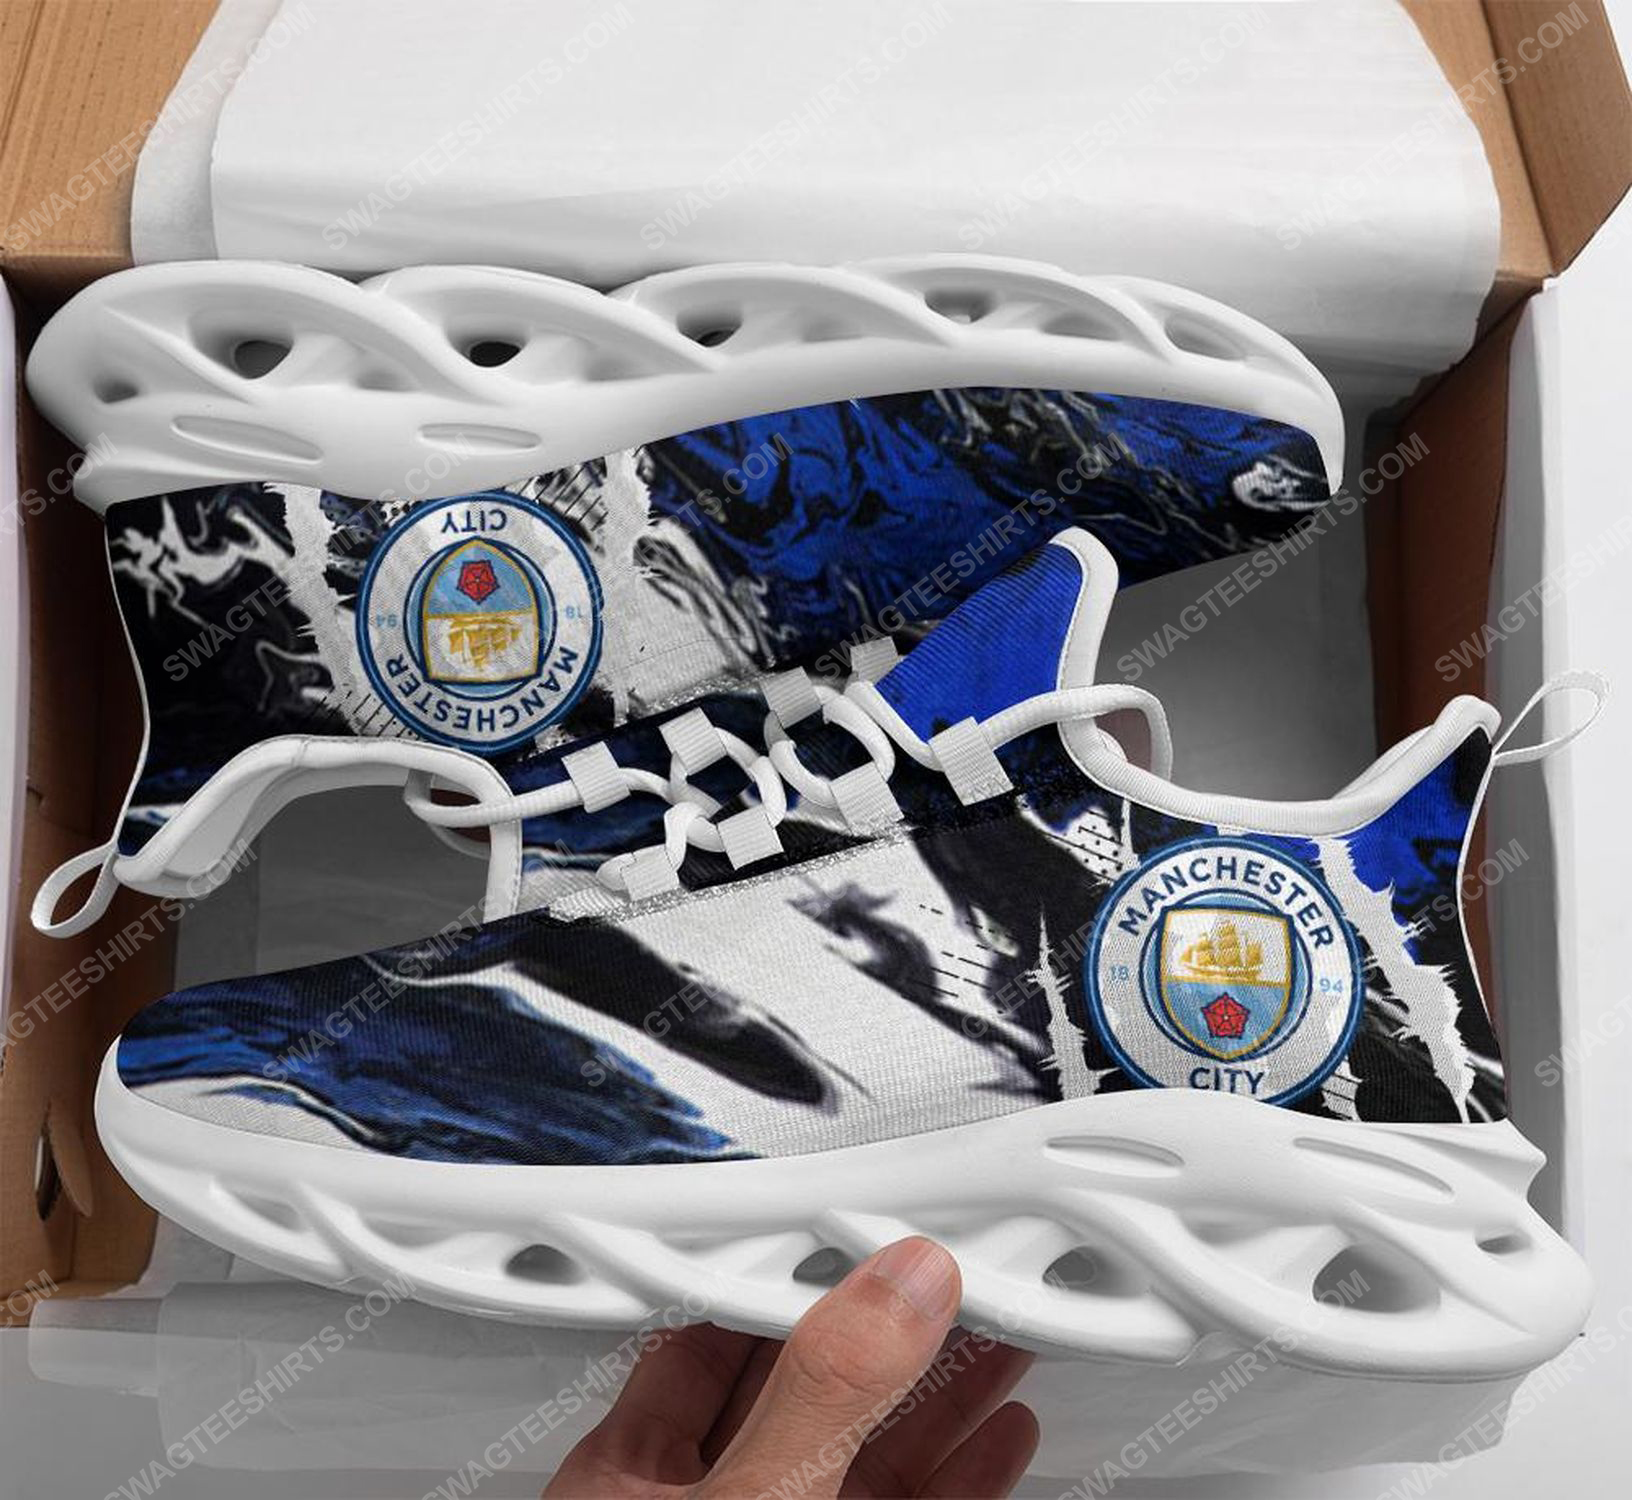 The manchester city football club max soul shoes 1 - Copy (2)